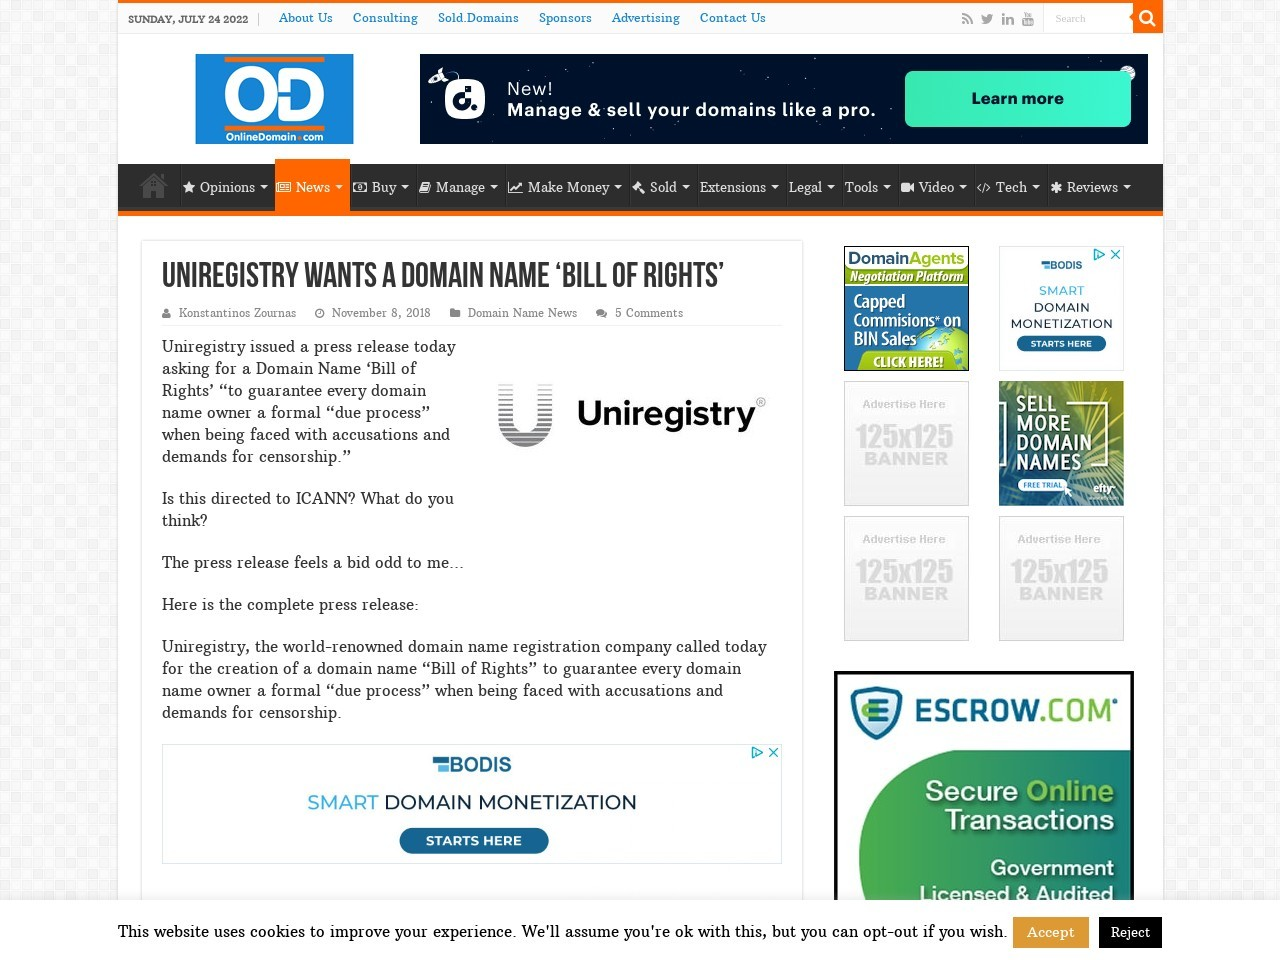 Uniregistry wants a domain name 'Bill of Rights'